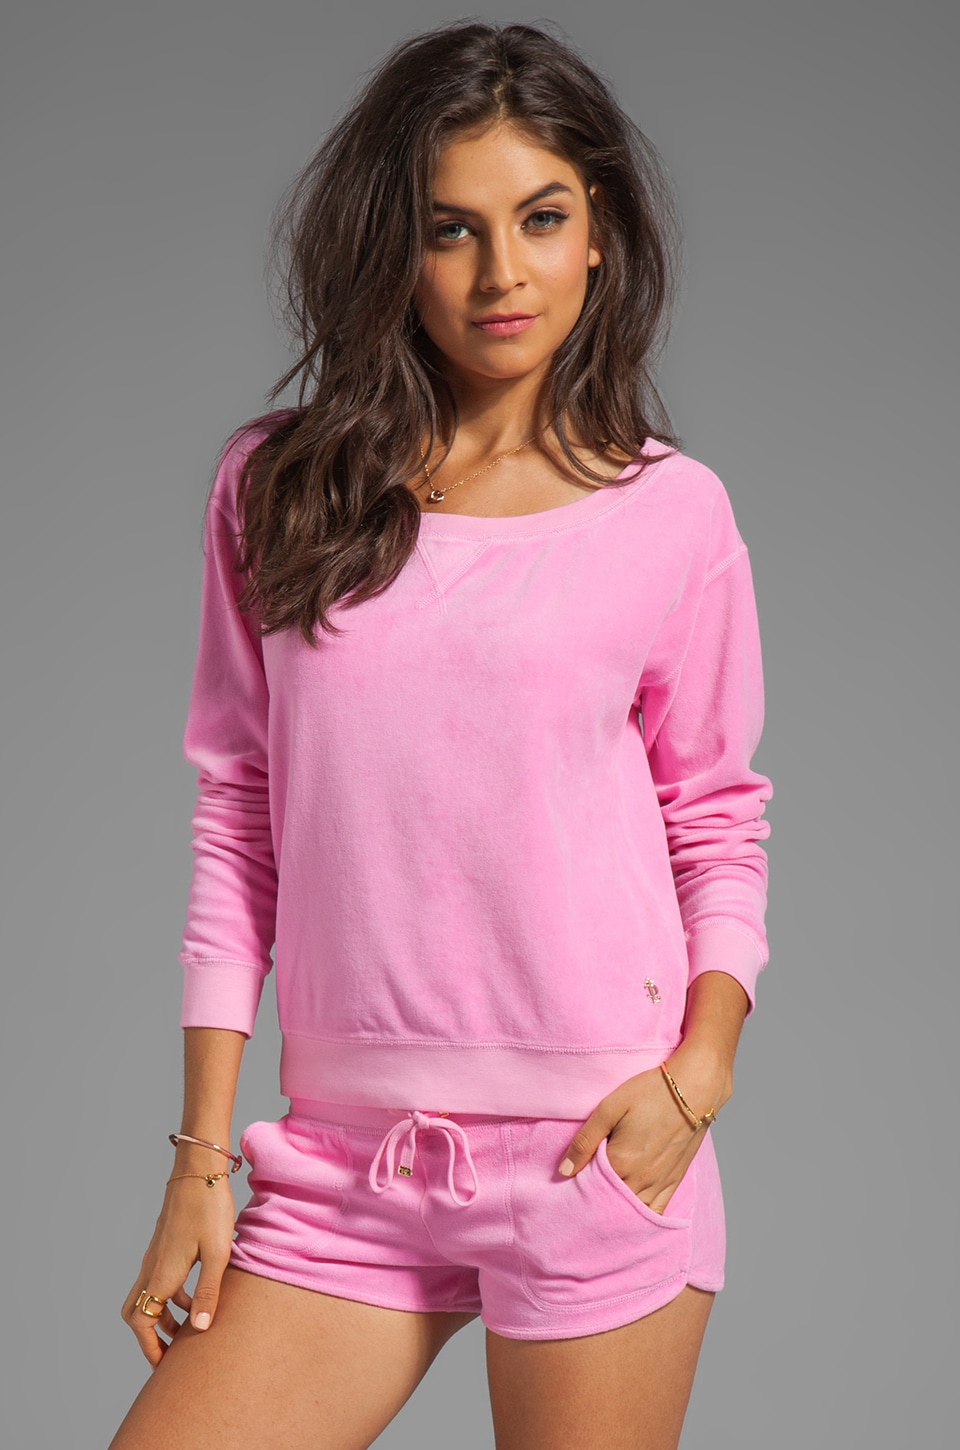 Juicy Couture Velour Off the Shoulder Sweatshirt in Synthetic Pink